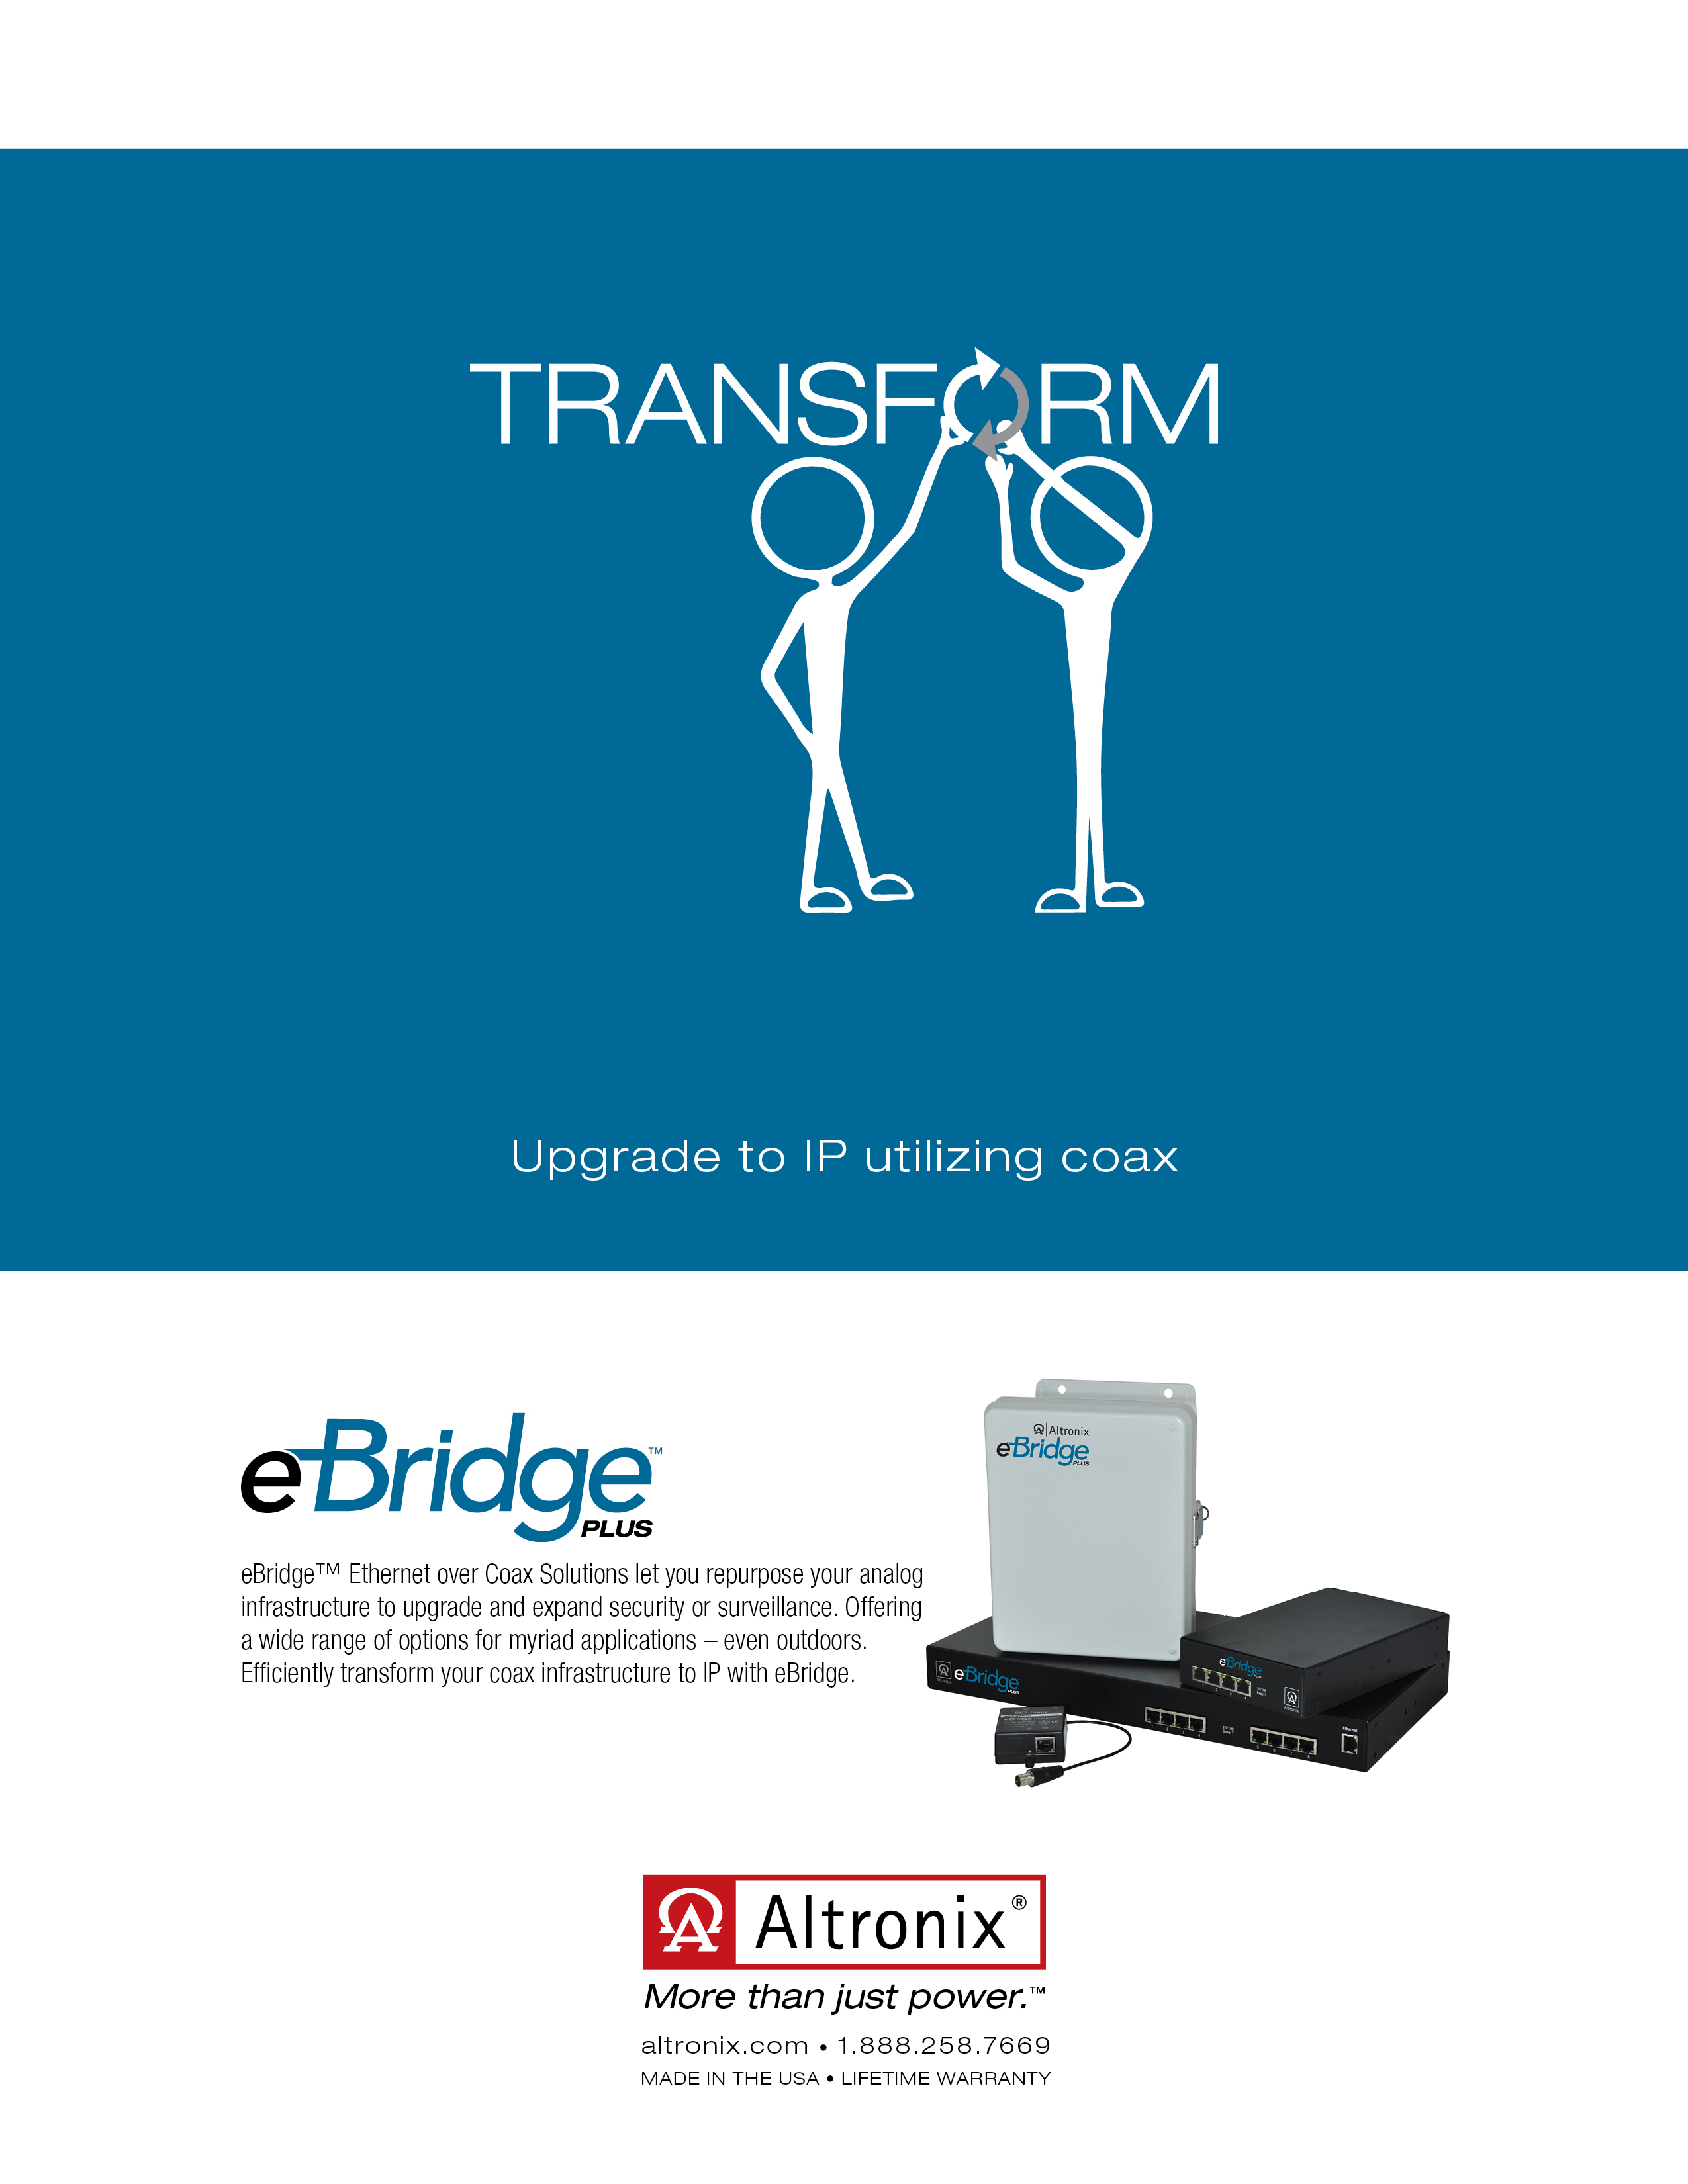 Altronix Transform Print Ad